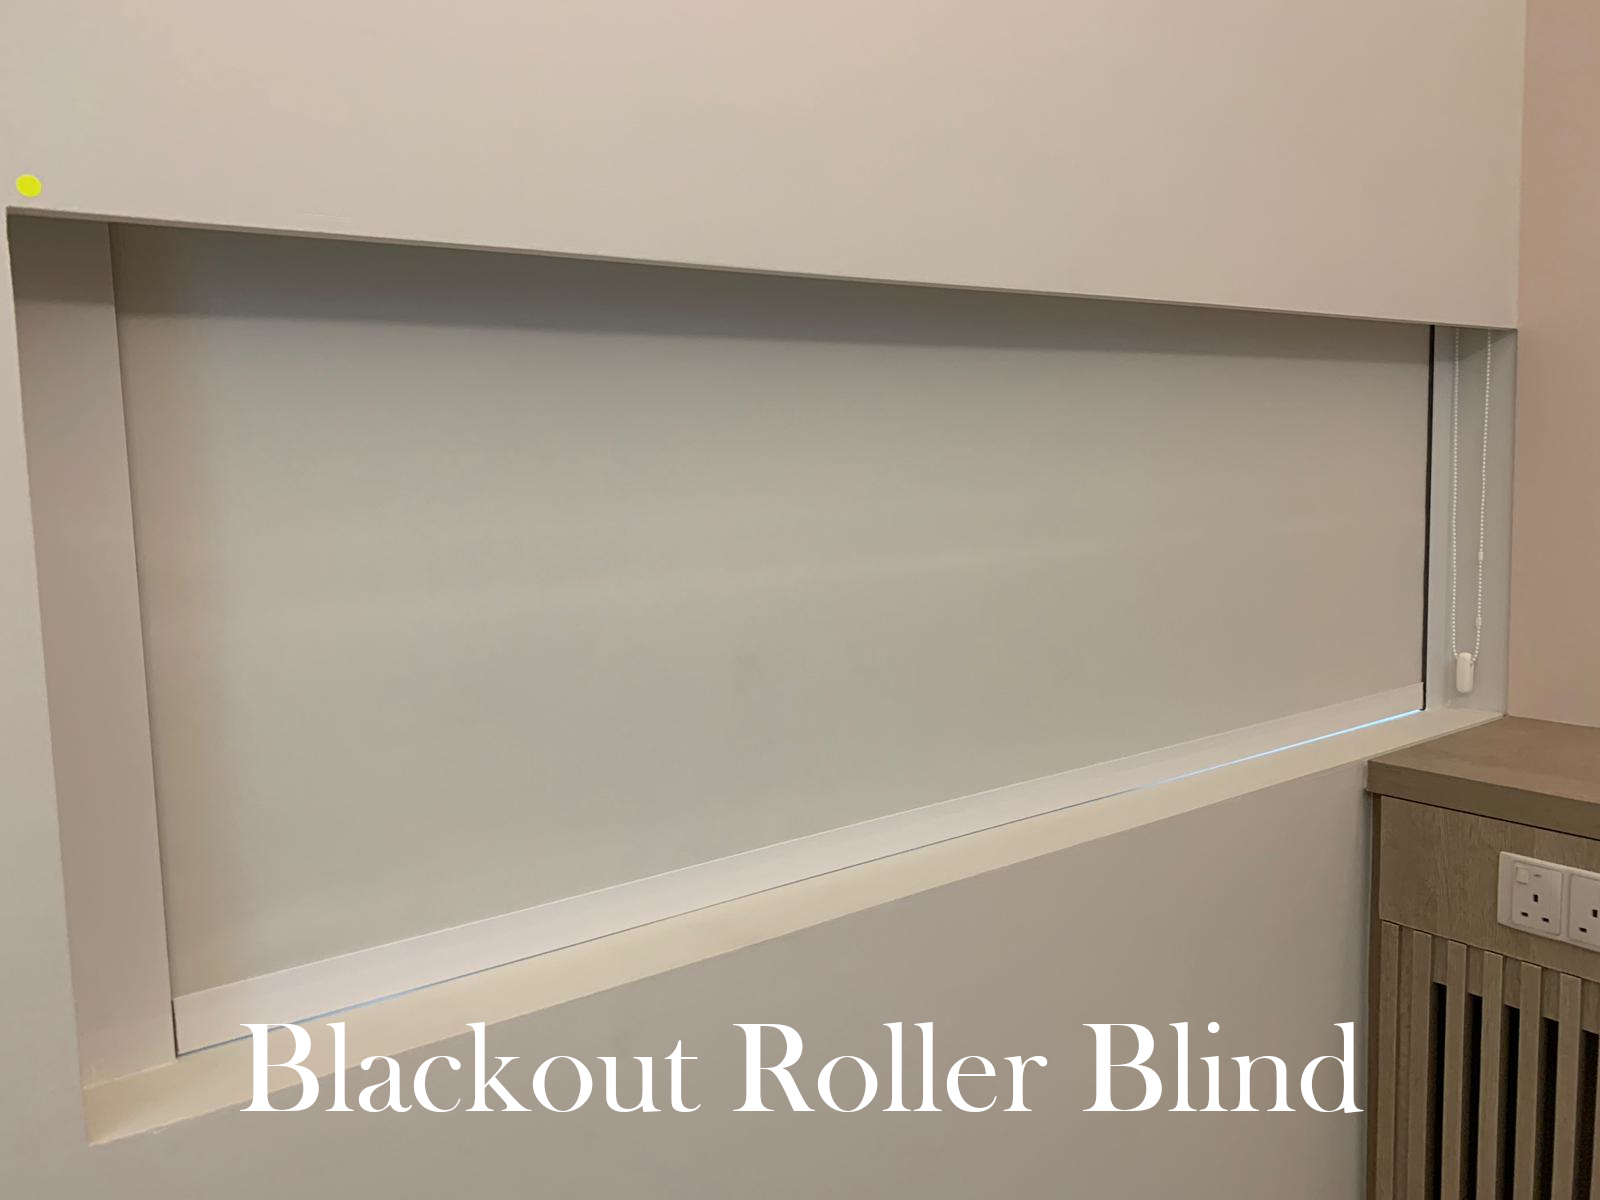 Cypress Avenue Roller Blind 12